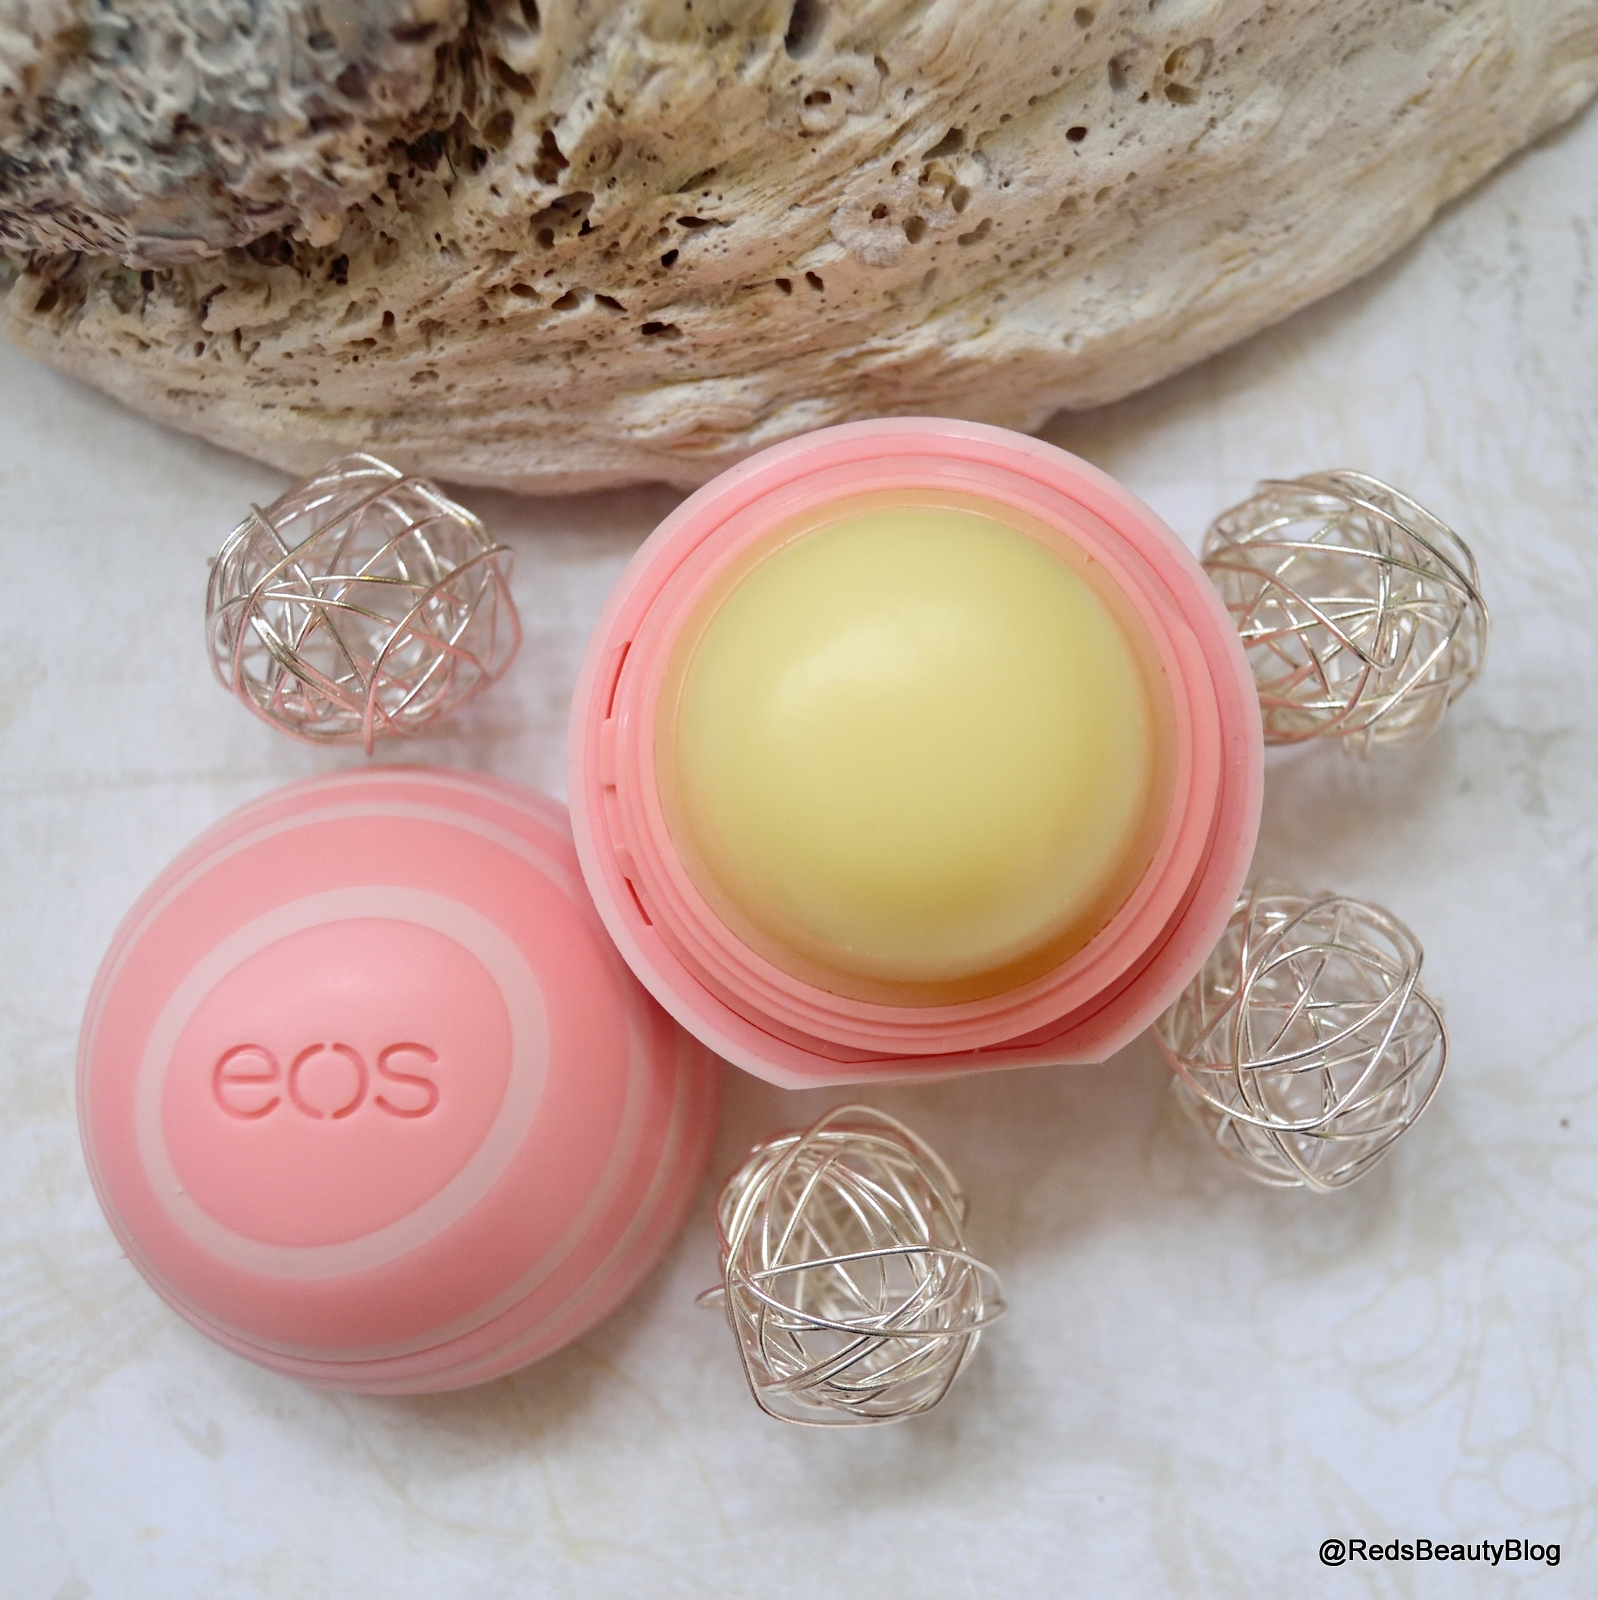 A picture of EOS lip balm in coconut